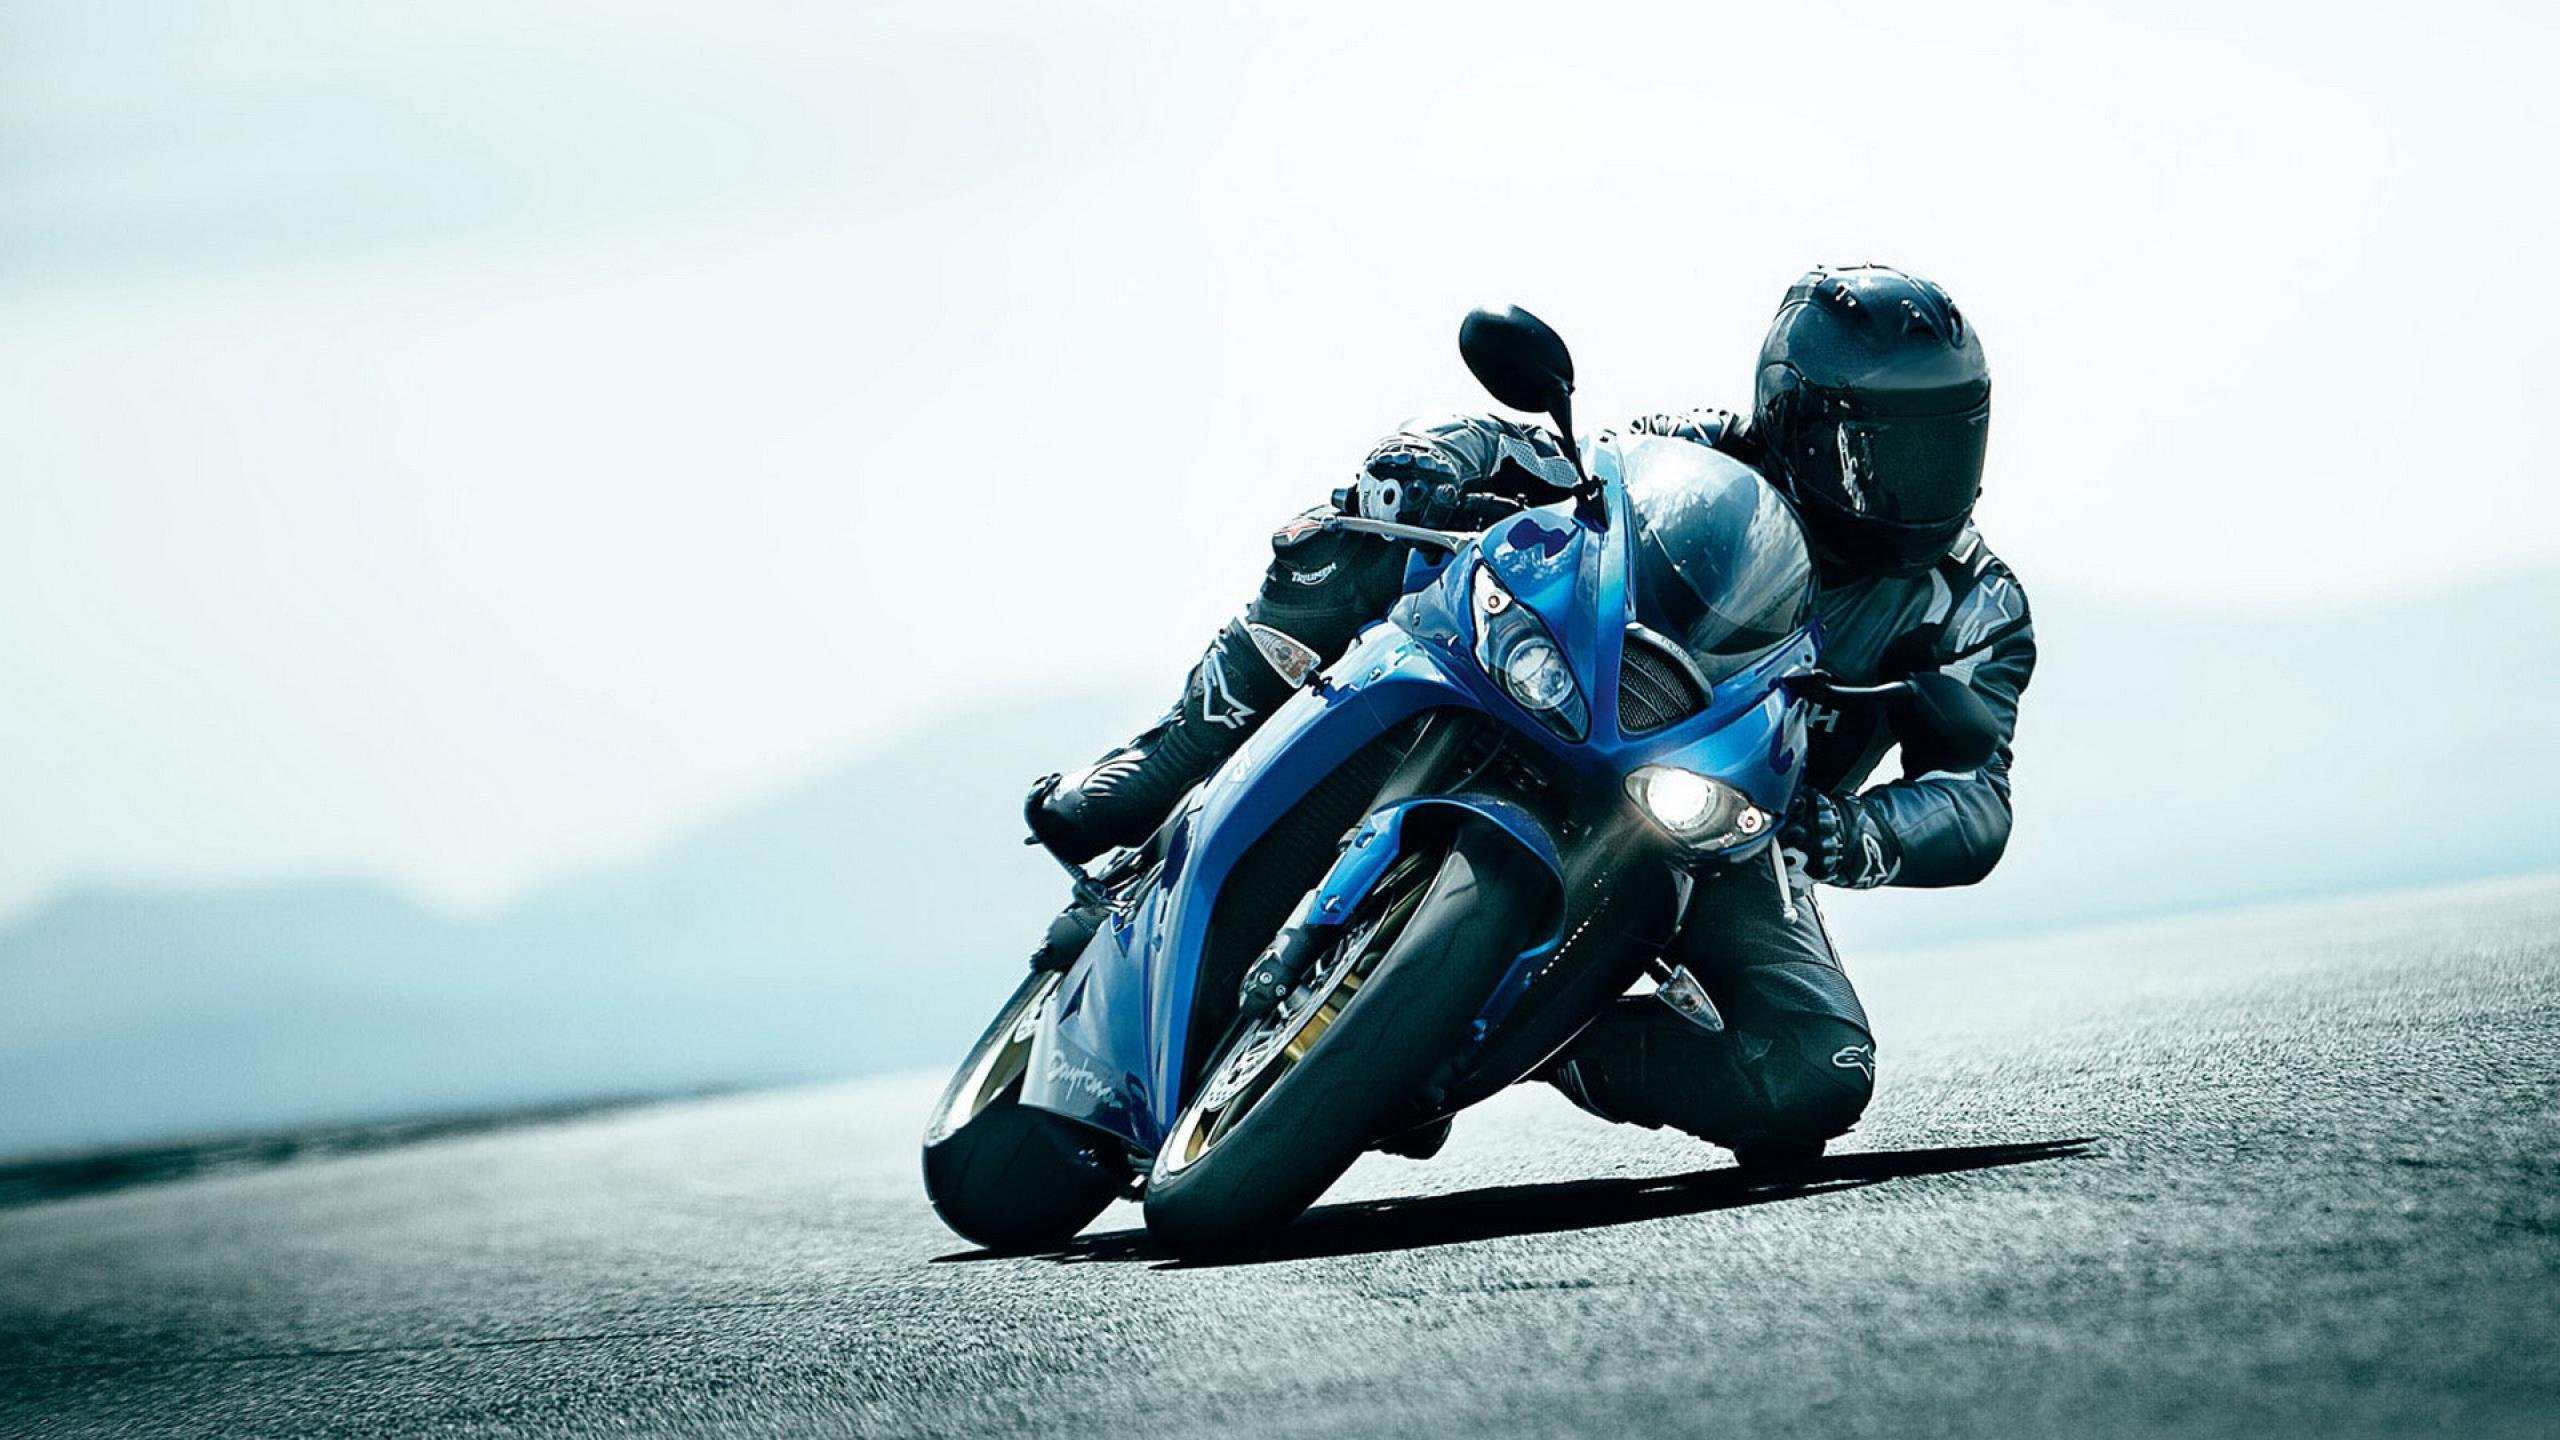 Cool sport bikes wallpaper for mobile